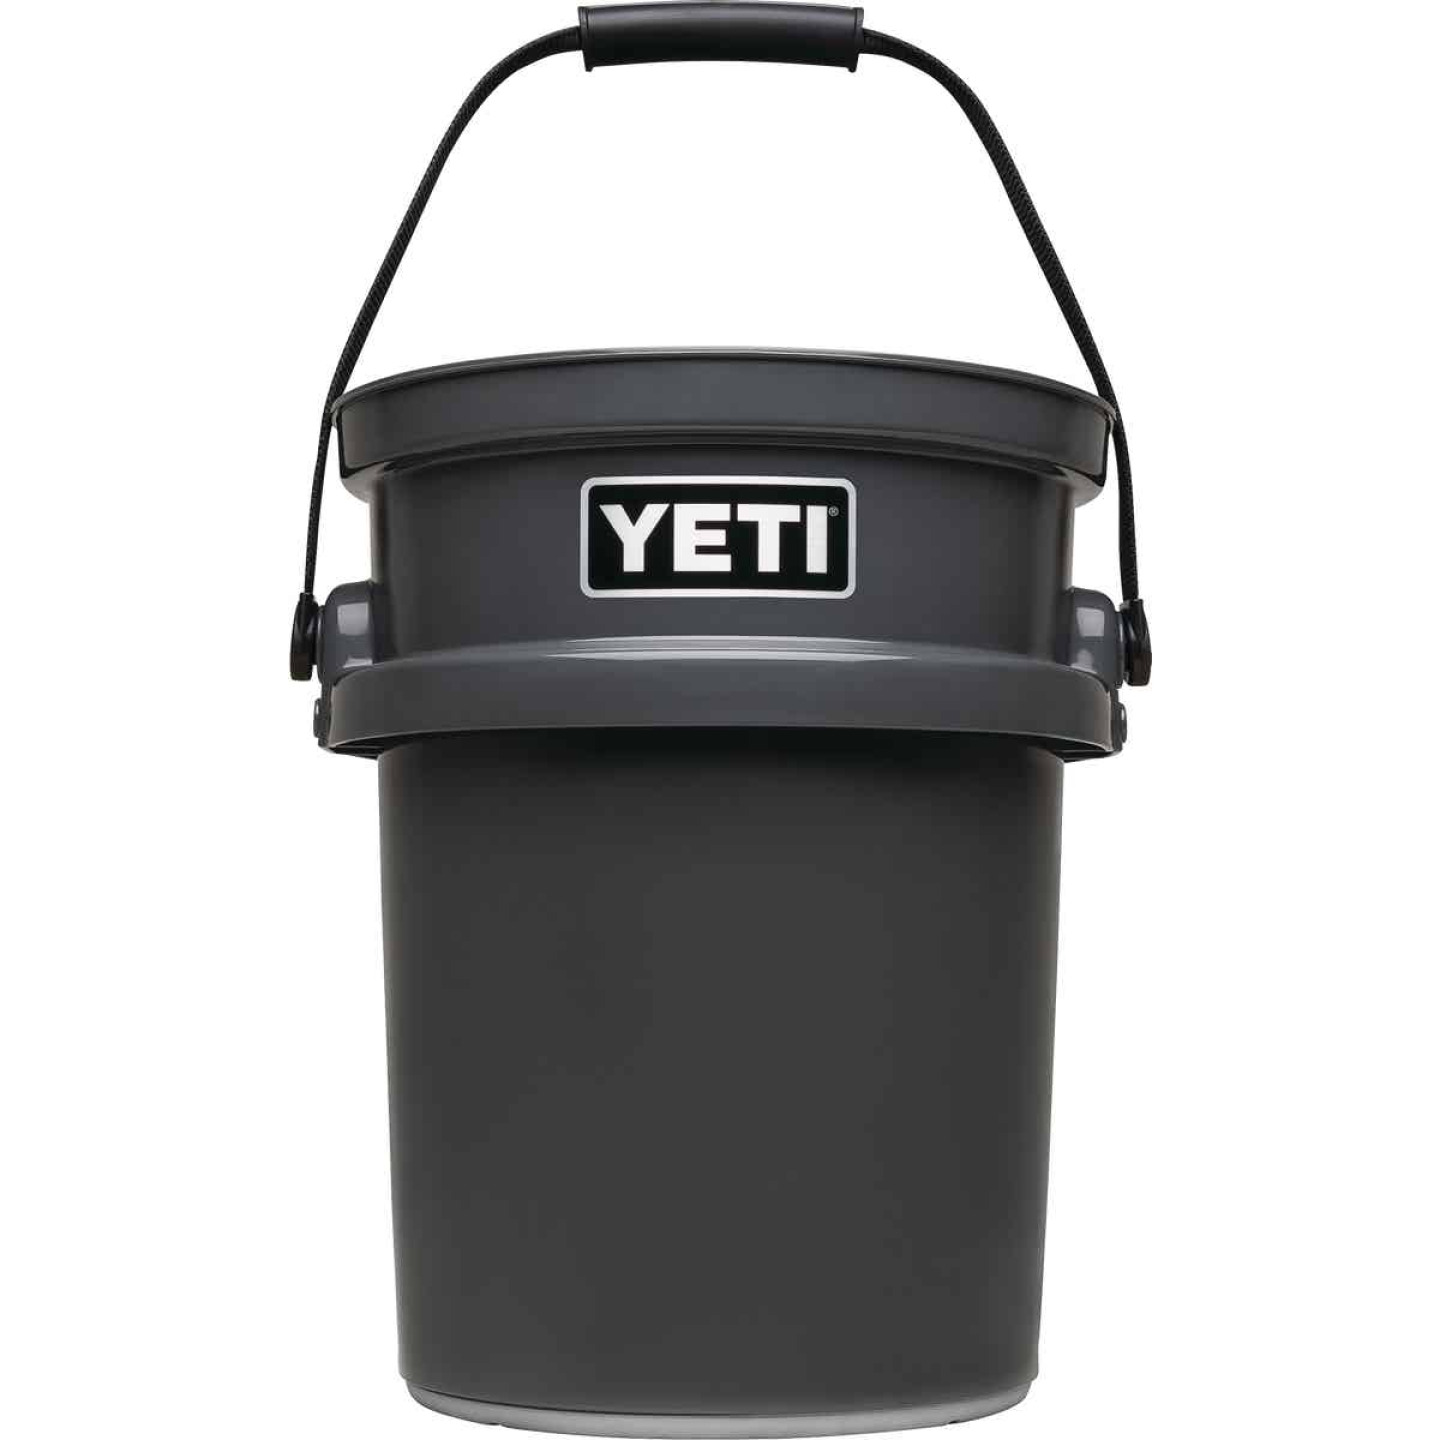 Yeti LoadOut 5 Gal. Charcoal Bucket Image 1